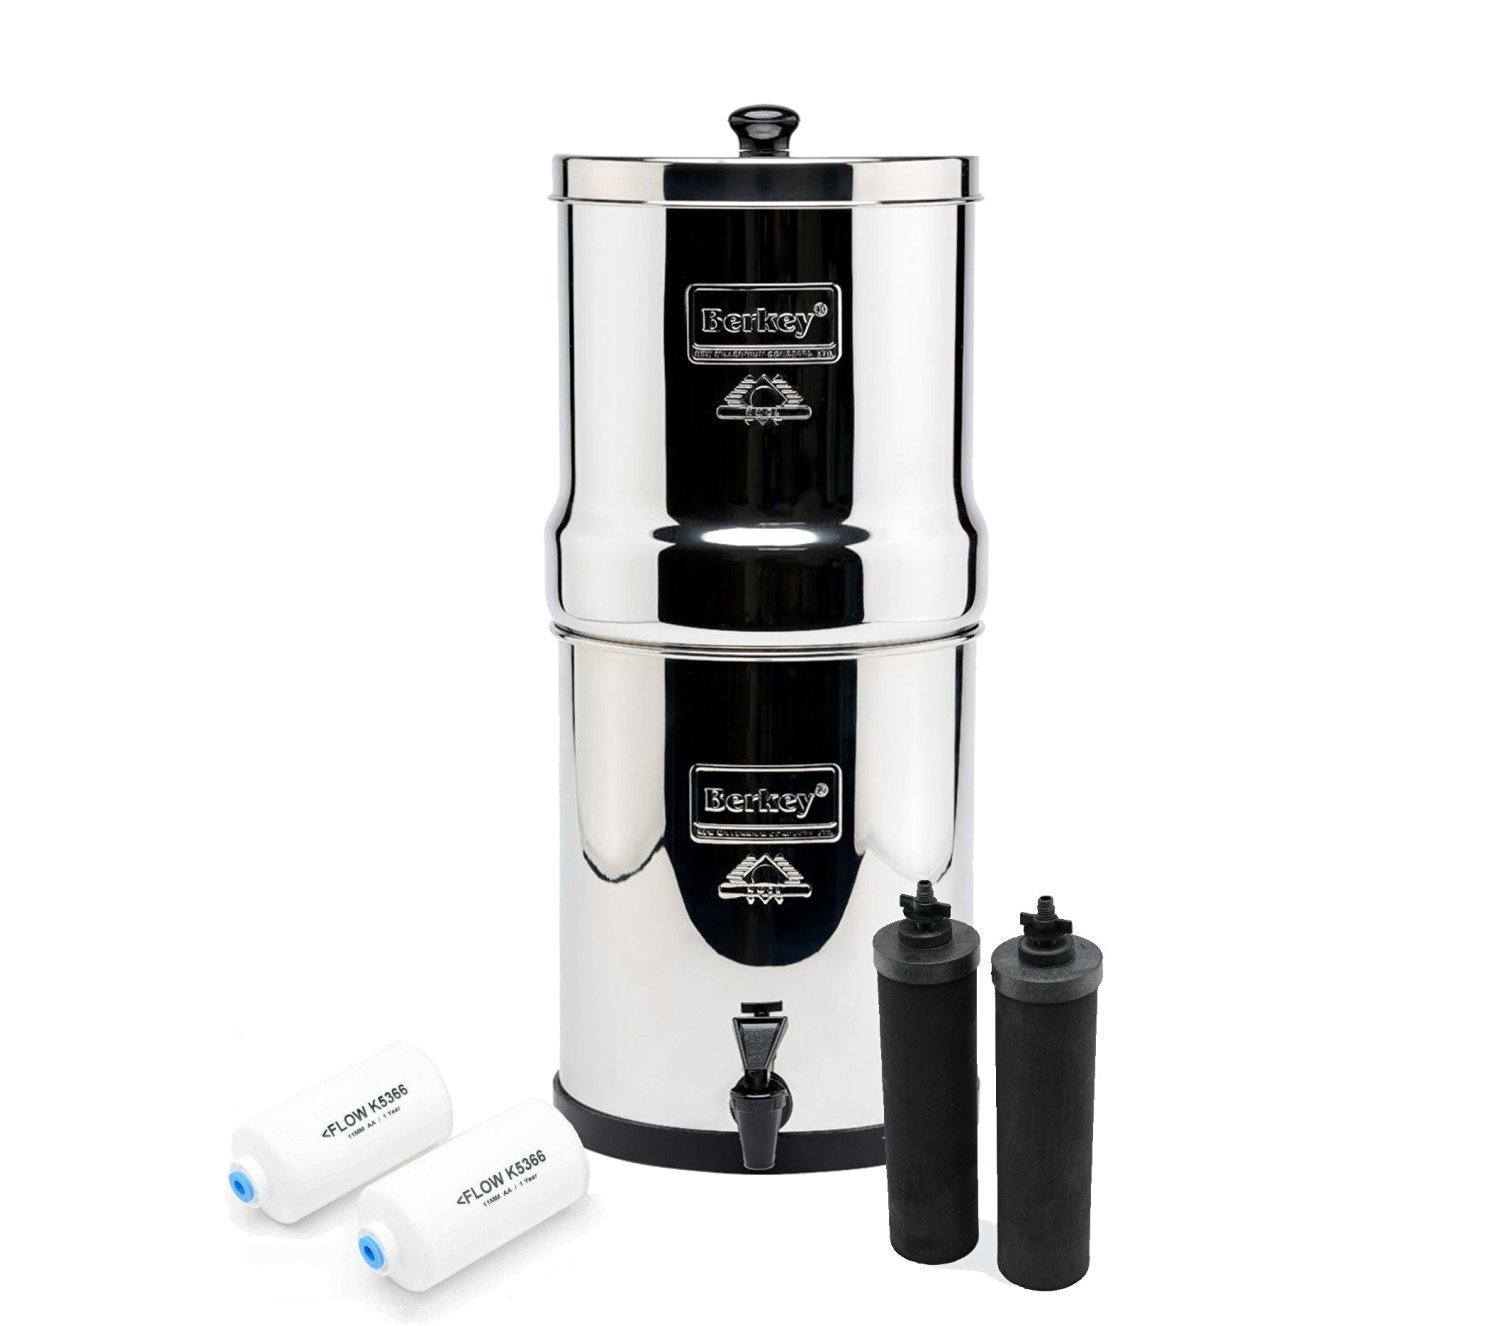 Royal Berkey Water Filter Complete with 2 Black Purifiers Elements With 2 PF-2 Fluoride Filter~Filtration System UK Stainless Steel